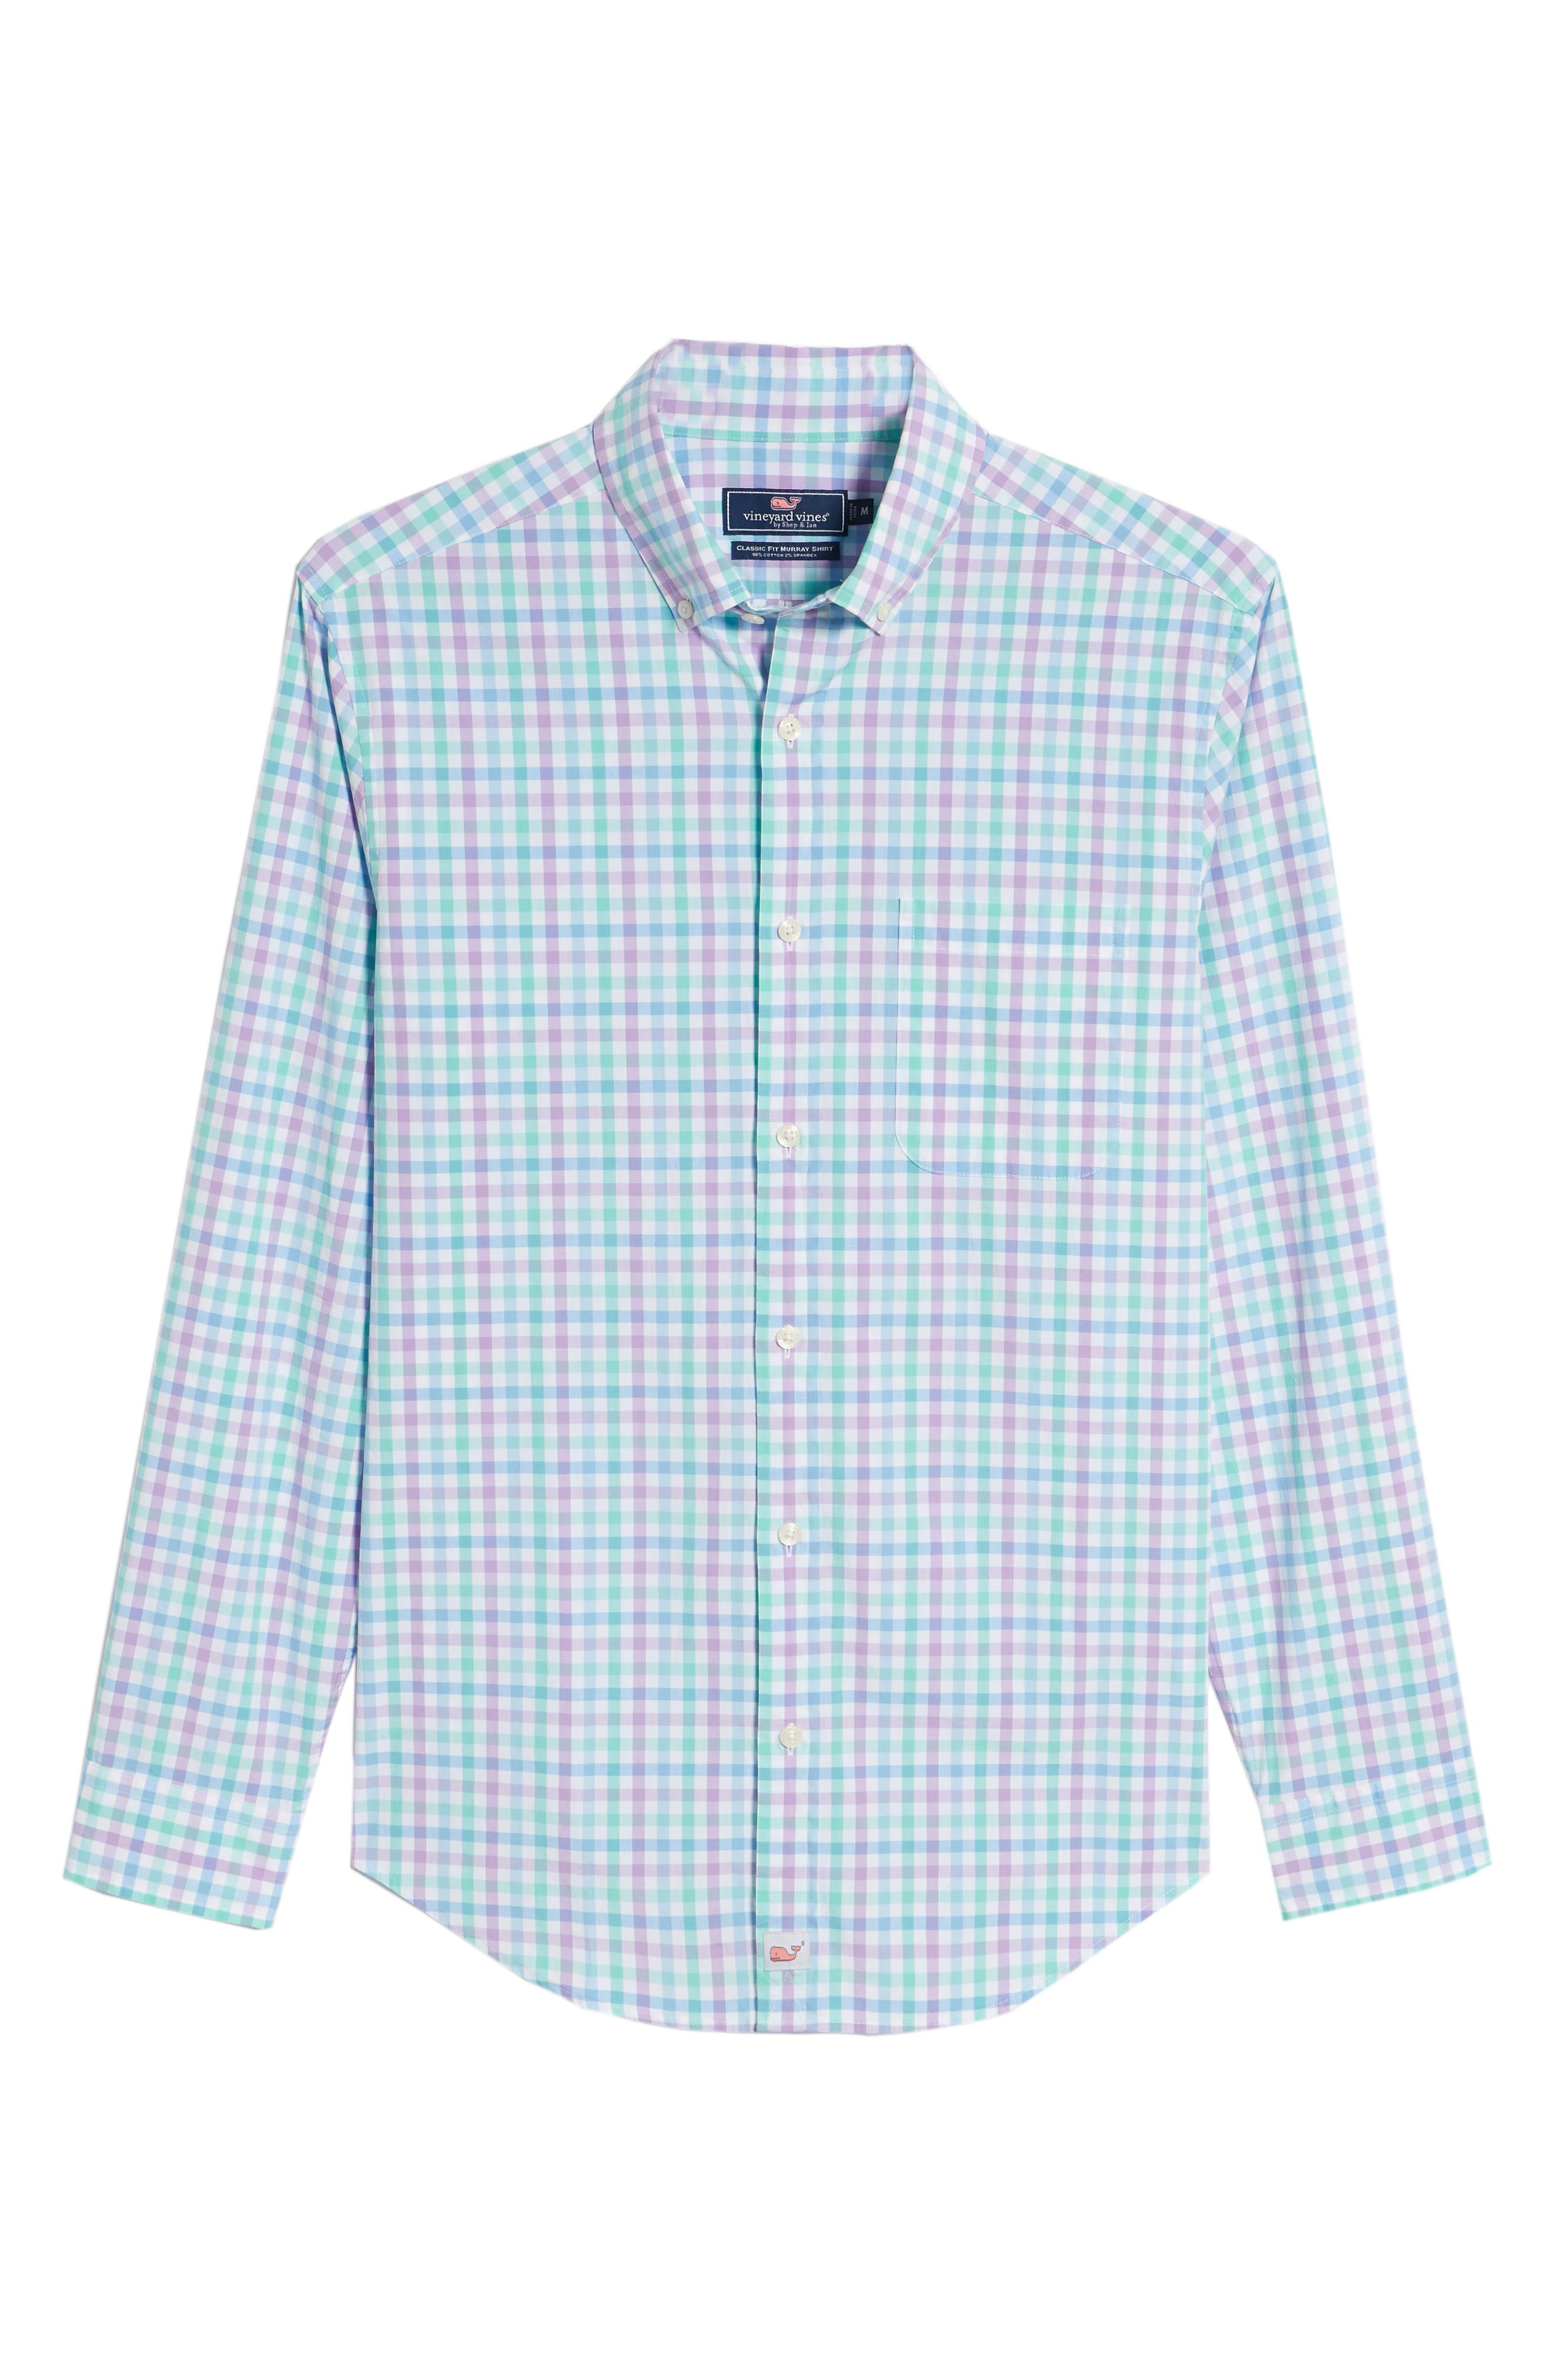 VINEYARD VINES,                             Murray Classic Fit Stretch Check Sport Shirt,                             Alternate thumbnail 6, color,                             526